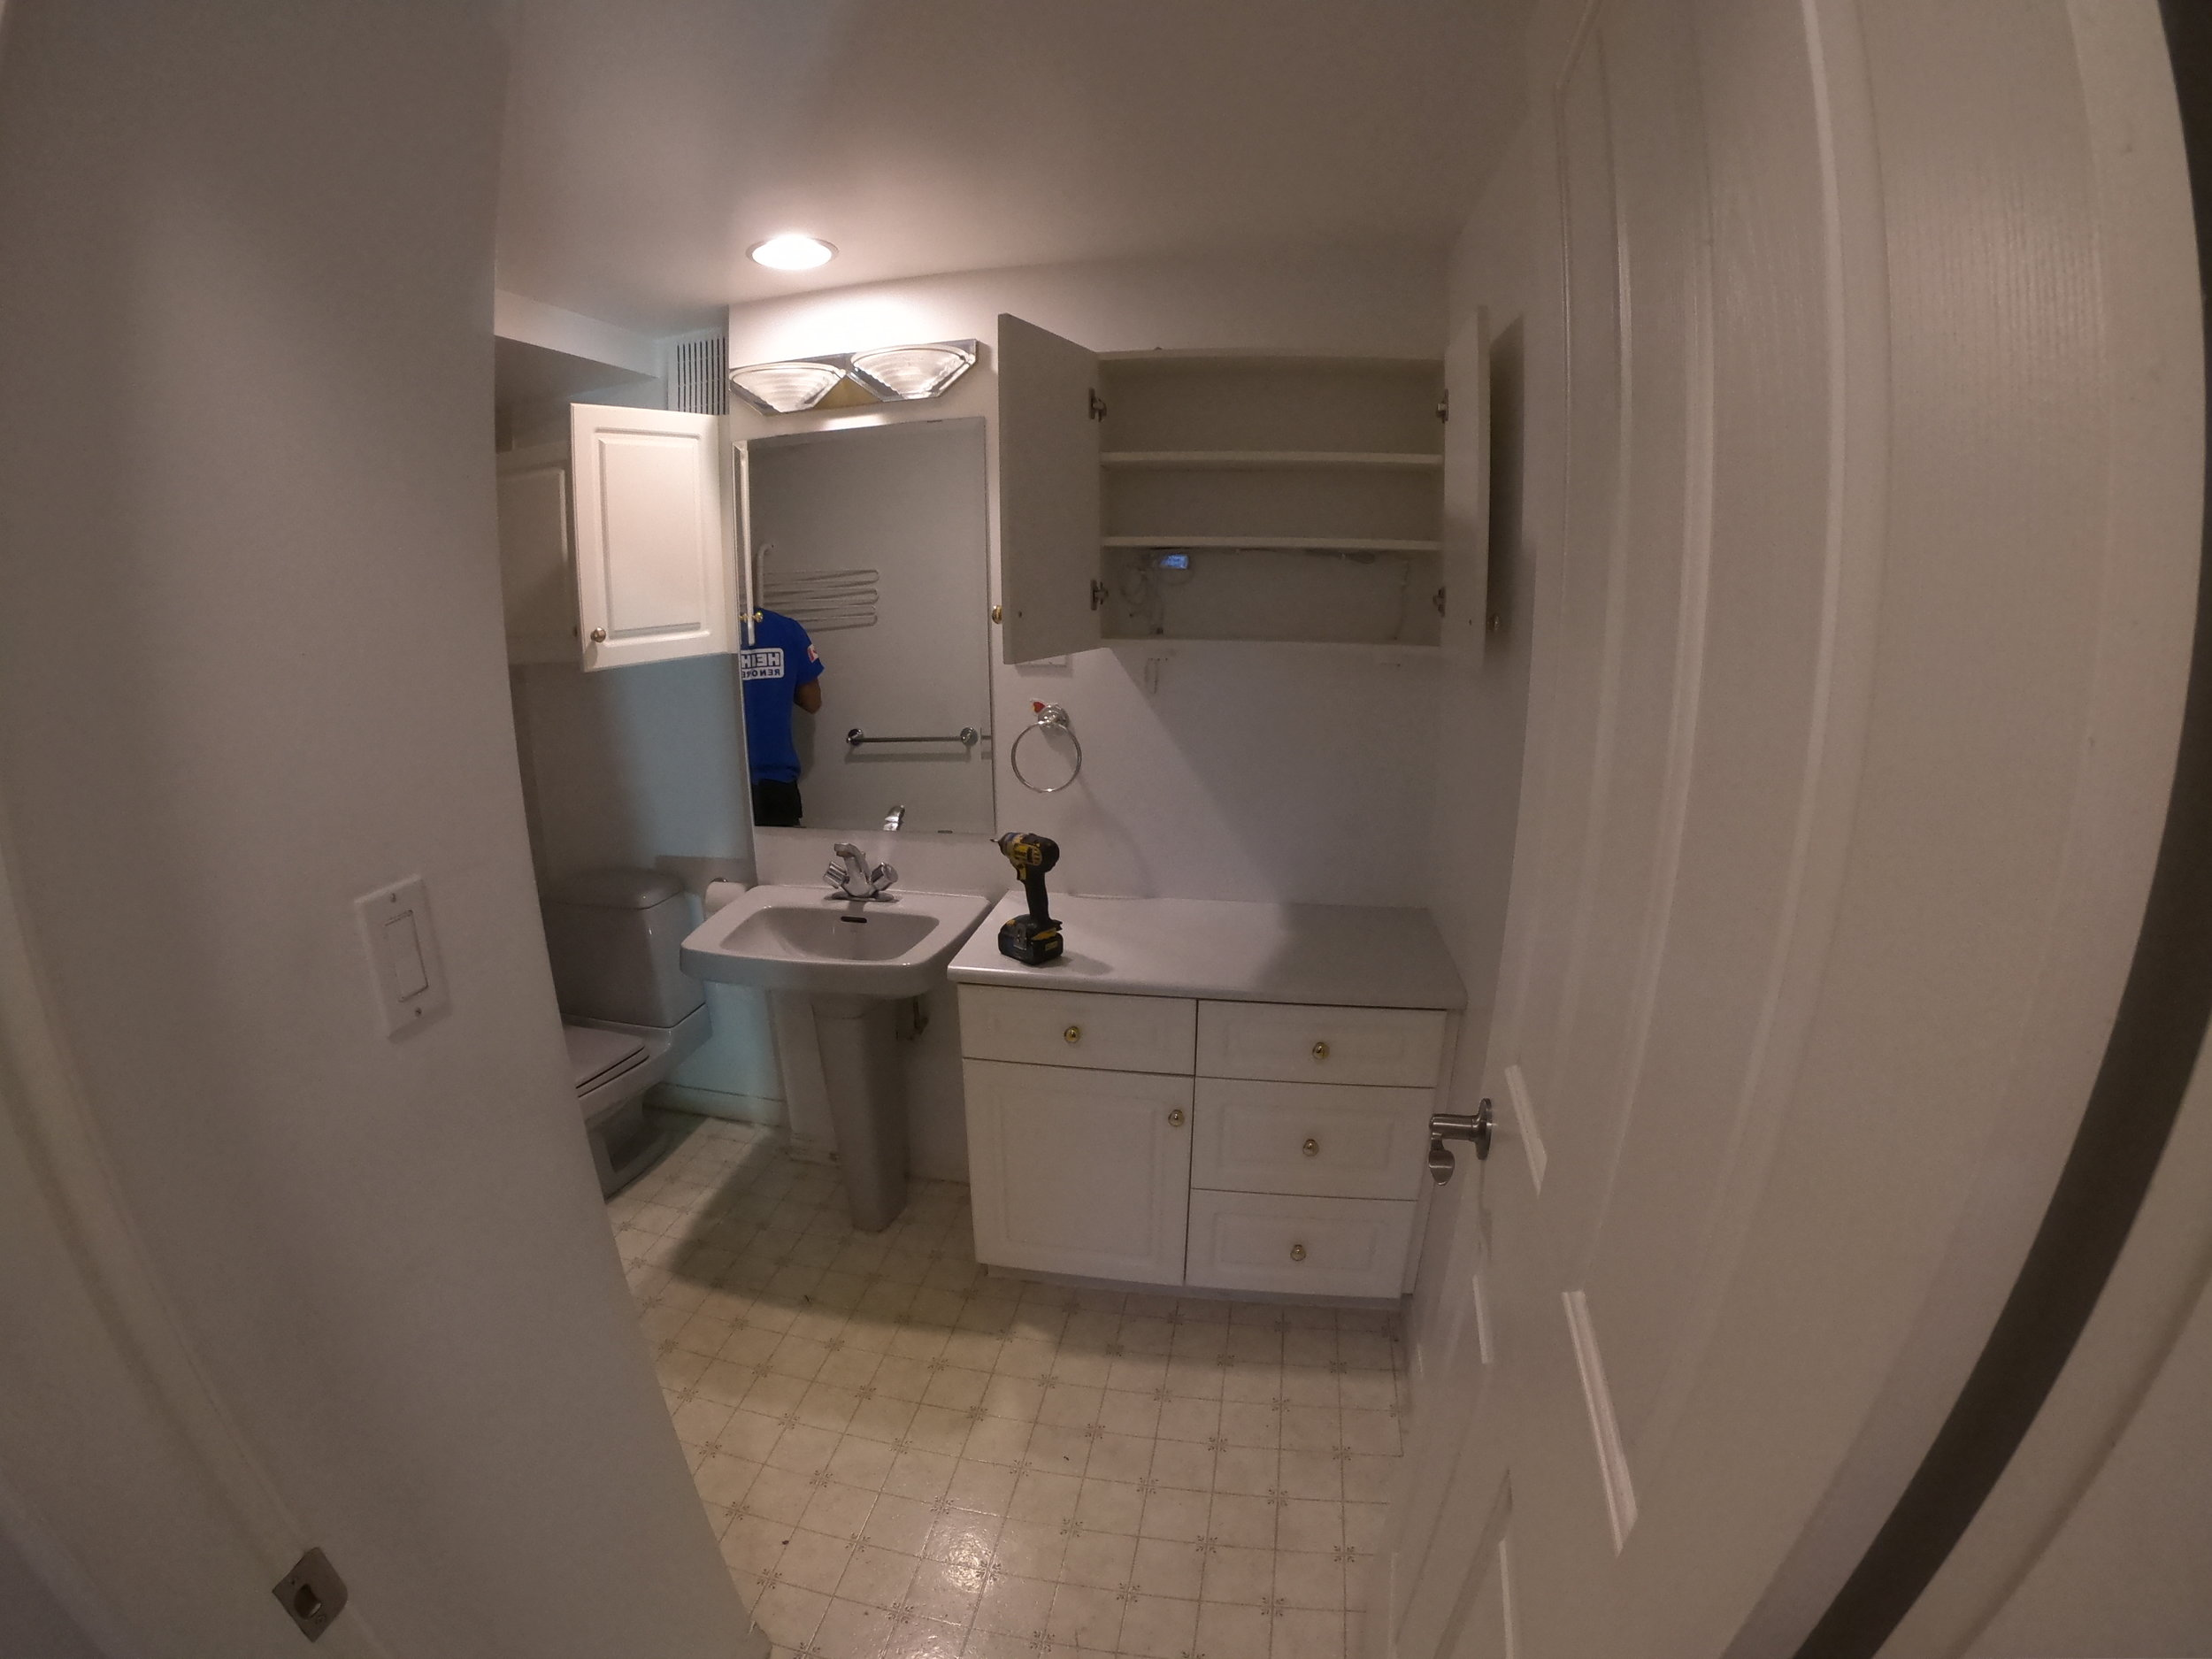 Old vanity, toilet, and cabinets in this North Vancouver Renovation